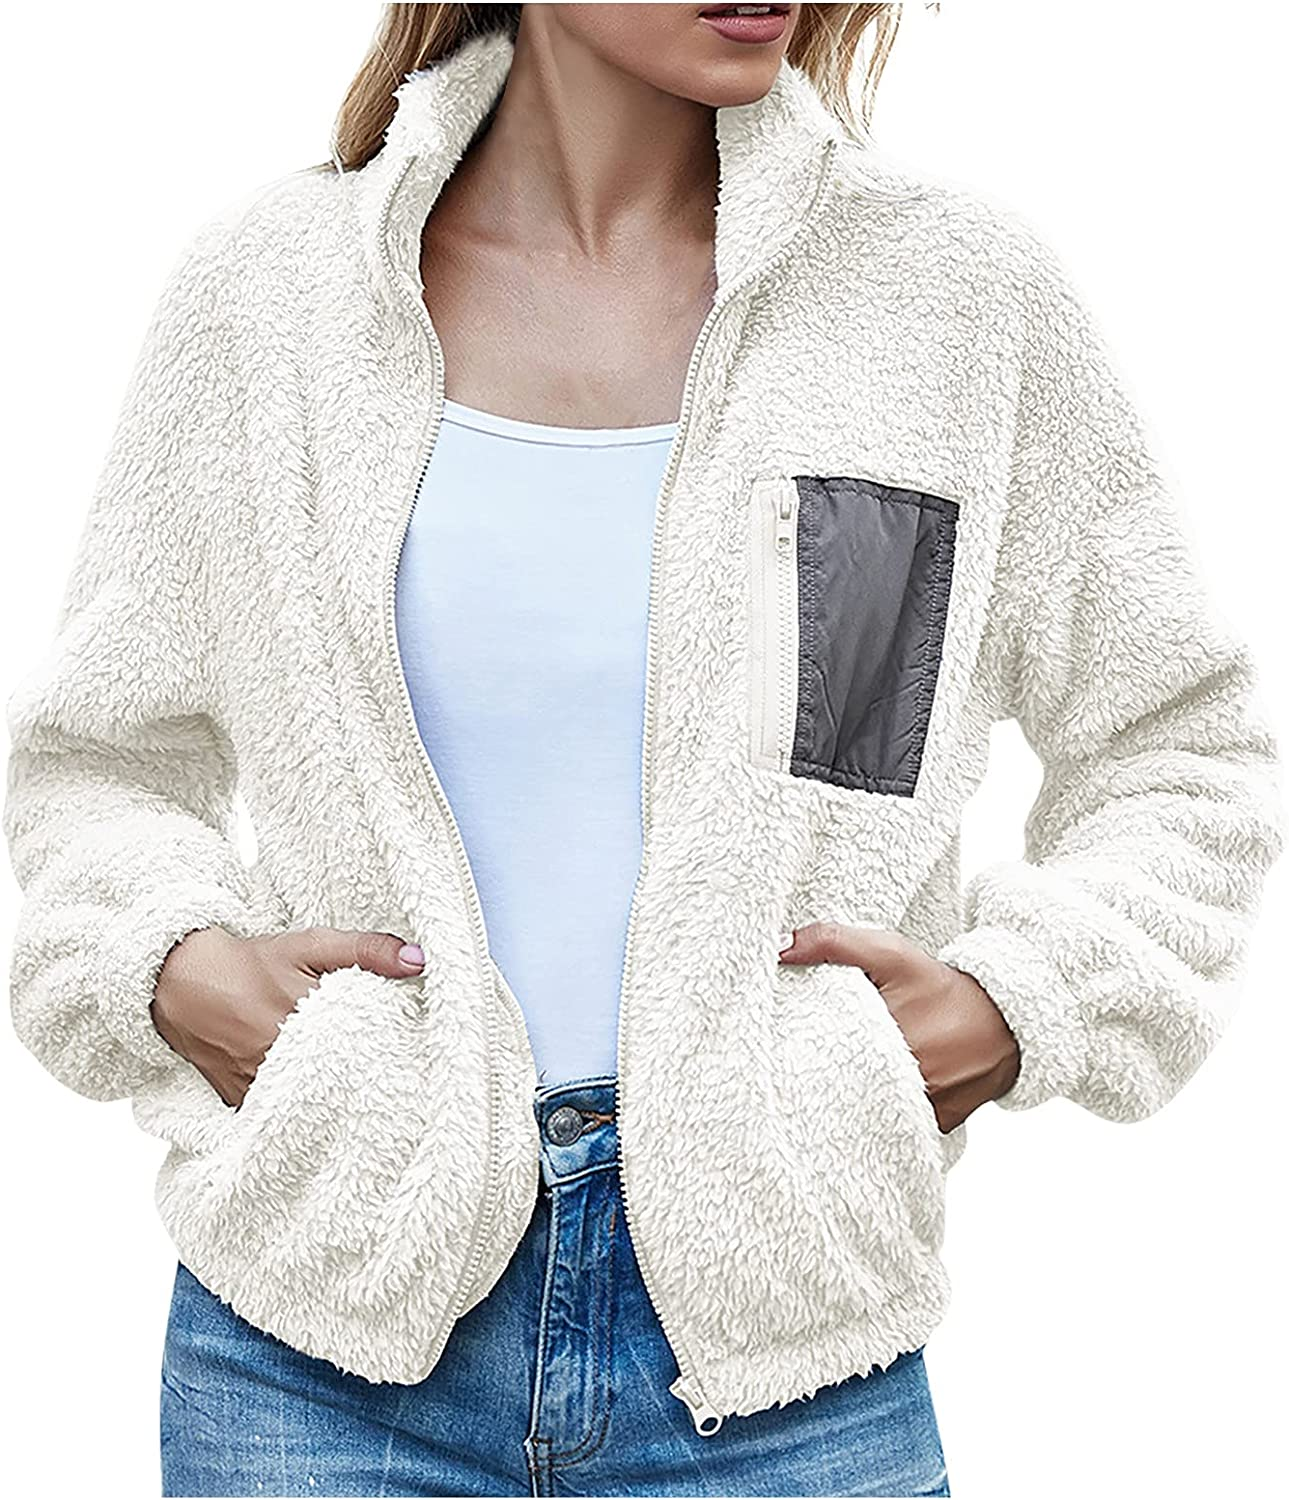 Winter Outfits for Women Casual Loose Solid Color Coat Plush Long-Sleeved Zip Up Jacket